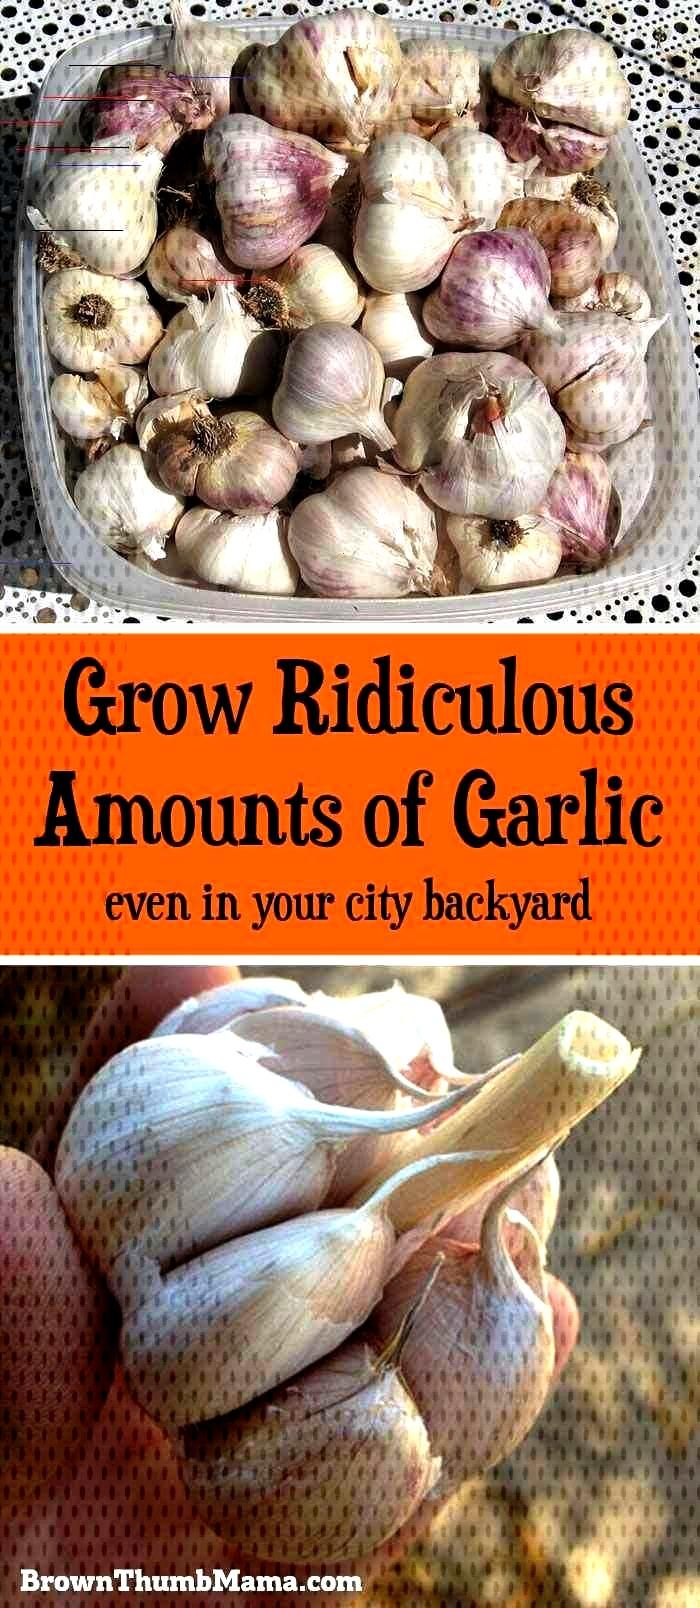 Grow Ridiculous Amounts of Garlic (even in your city backyard) Garlic is SO easy to grow. All you n